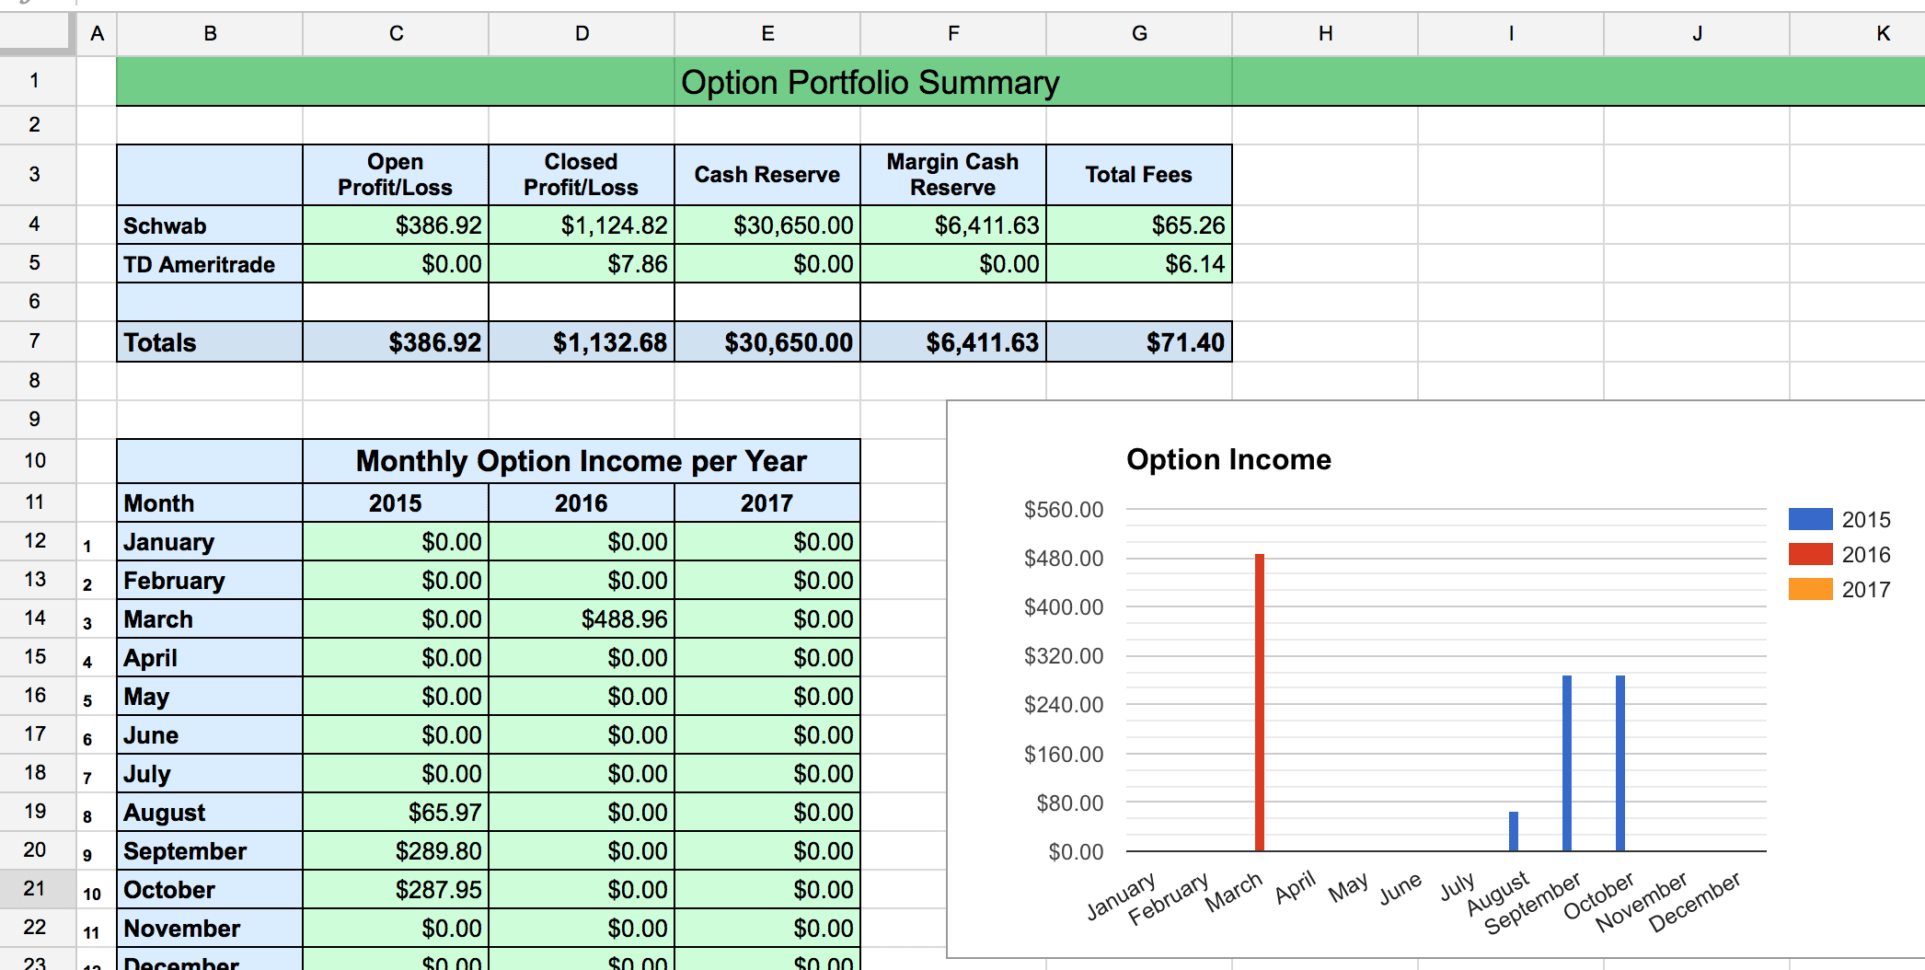 Insurance Commission Tracking Spreadsheet In Options